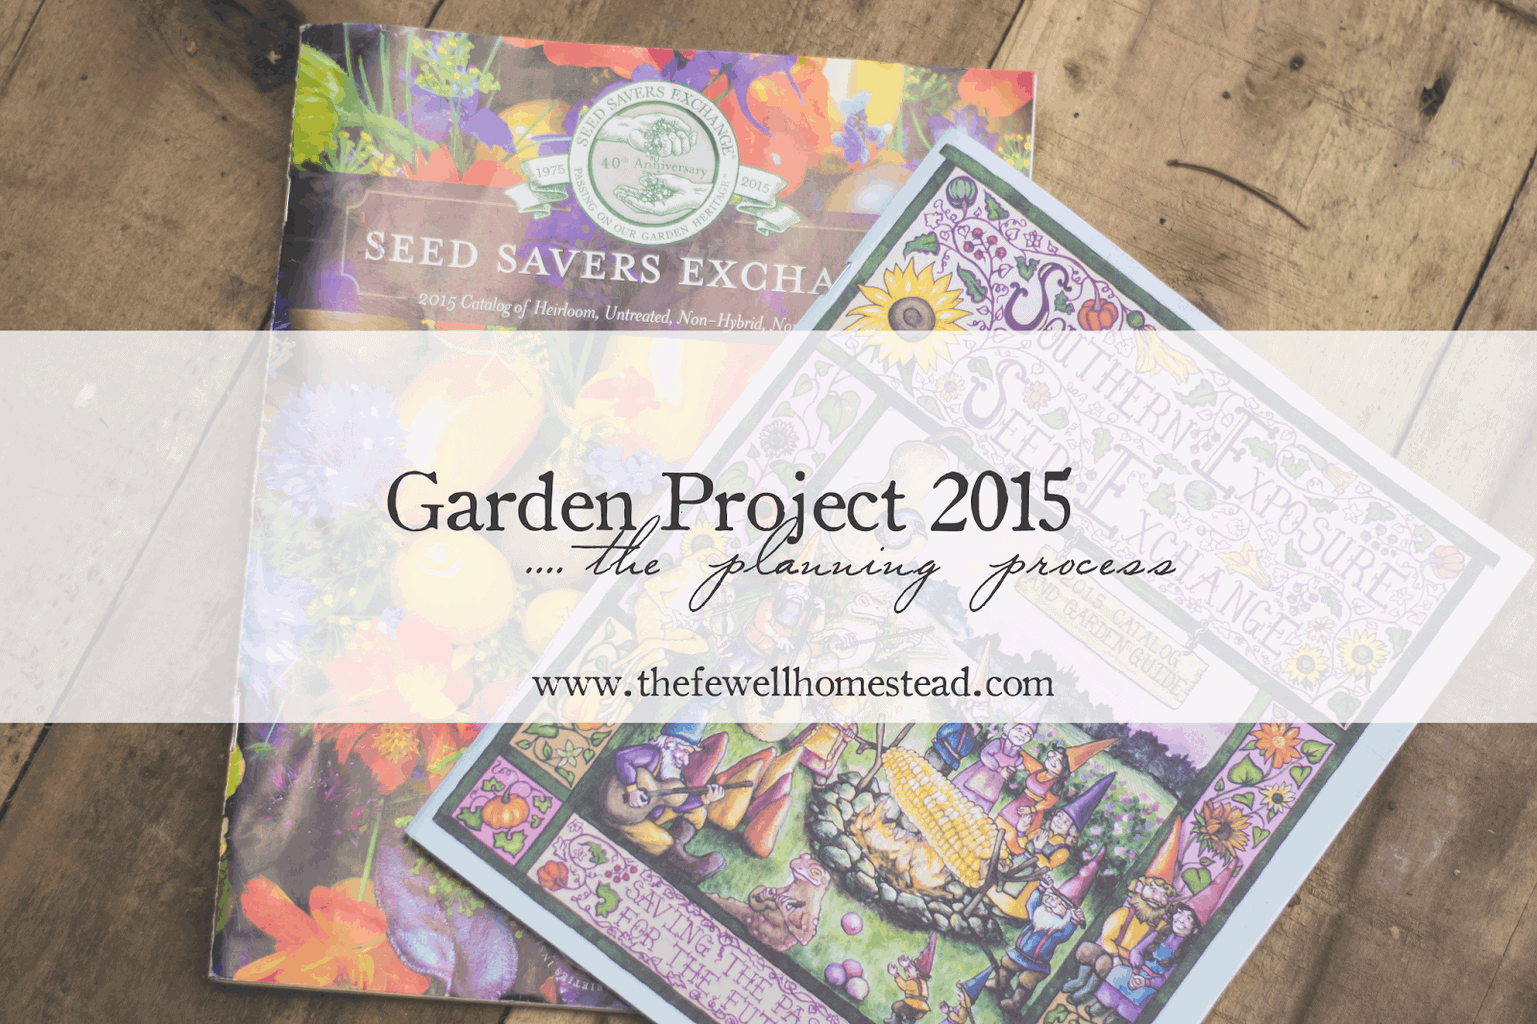 Garden Project 2015 | The Planning Process